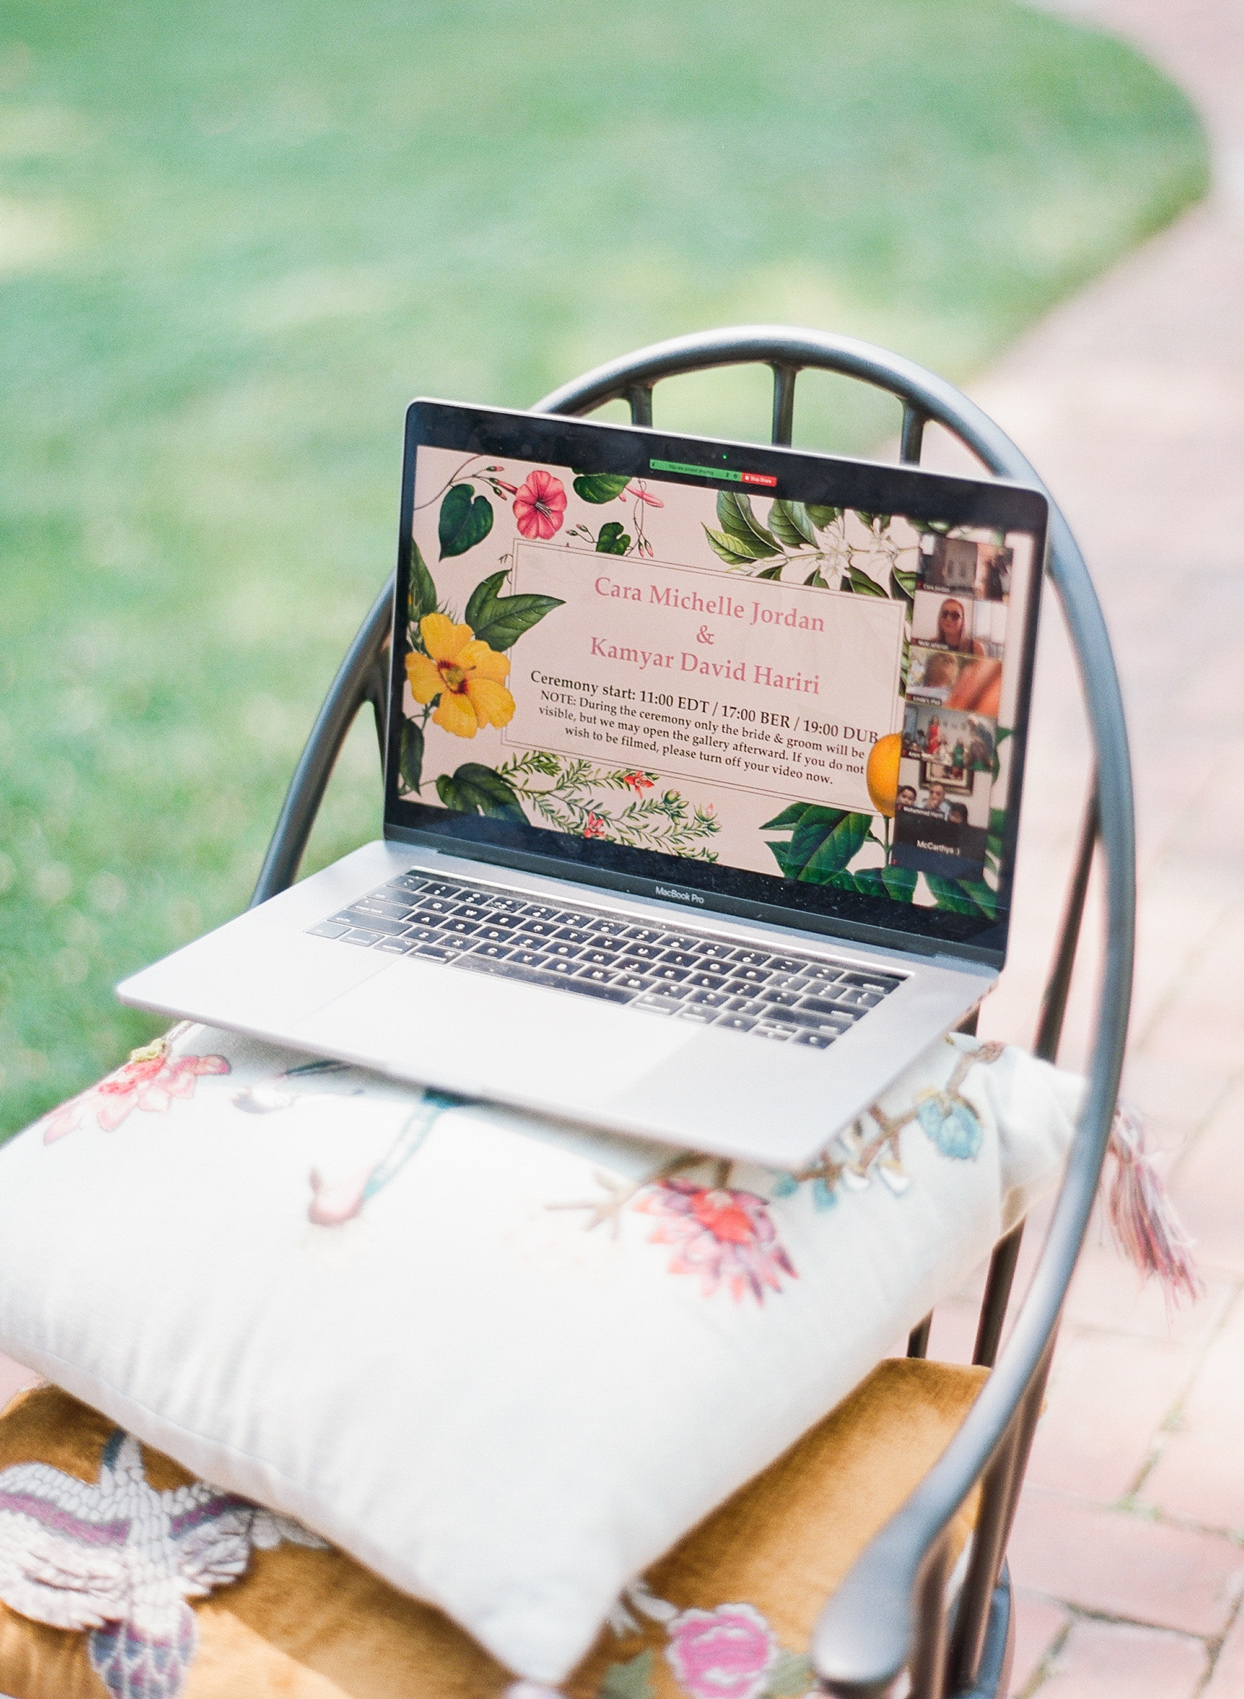 laptop propped up on decorative pillows streaming wedding ceremony